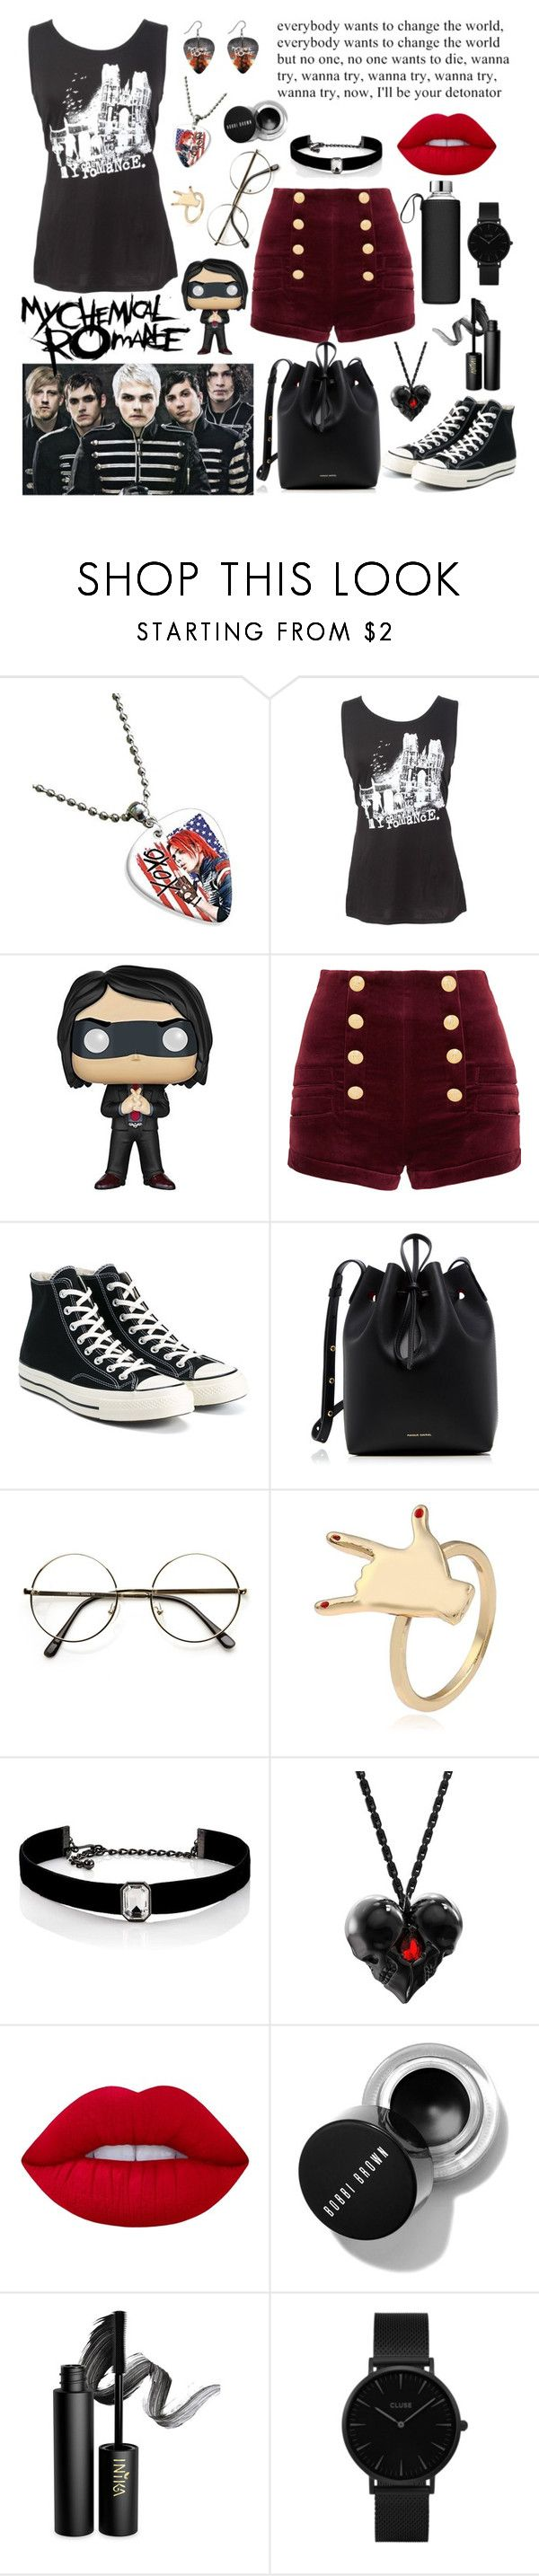 """My chemical romance"" by vitorialn ❤ liked on Polyvore featuring Nana', Funko, Pierre Balmain, Converse, Mansur Gavriel, Kenneth Jay Lane, Lime Crime, INIKA and CLUSE"